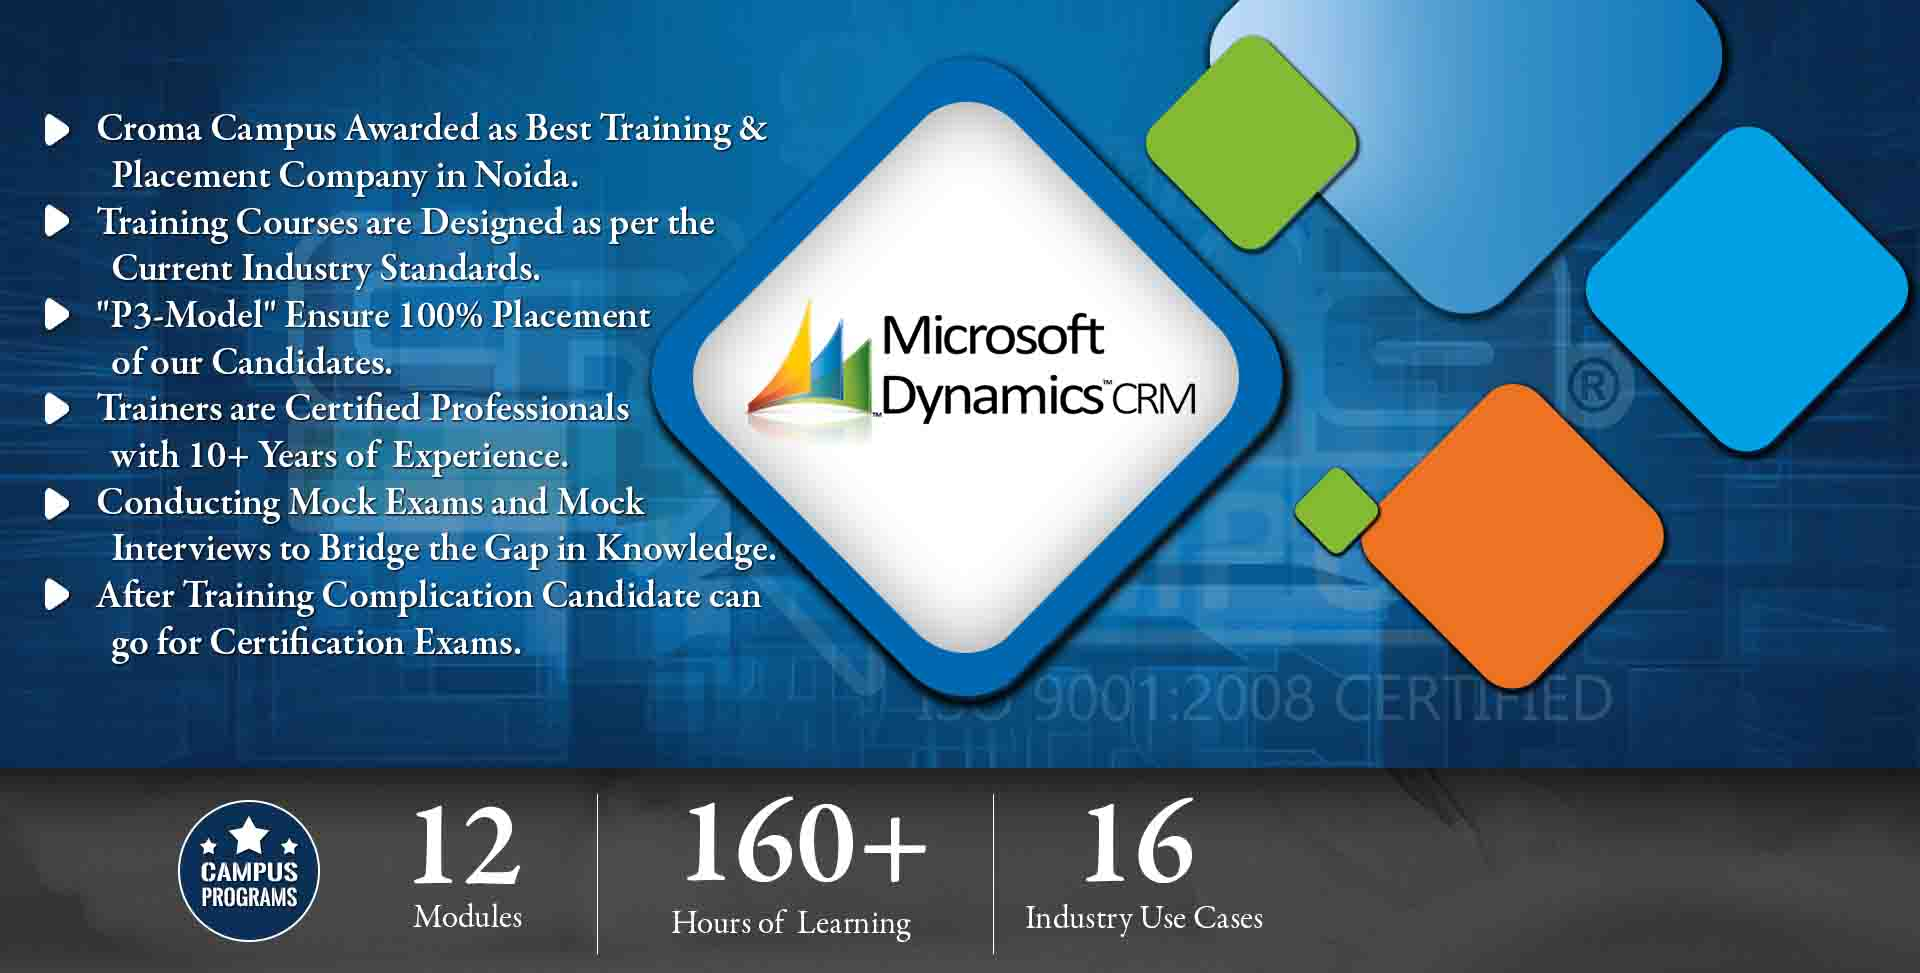 Microsoft dynamics crm training in noida best microsoft dynamics microsoft dynamics crm training in noida croma campus view sample certificate xflitez Images